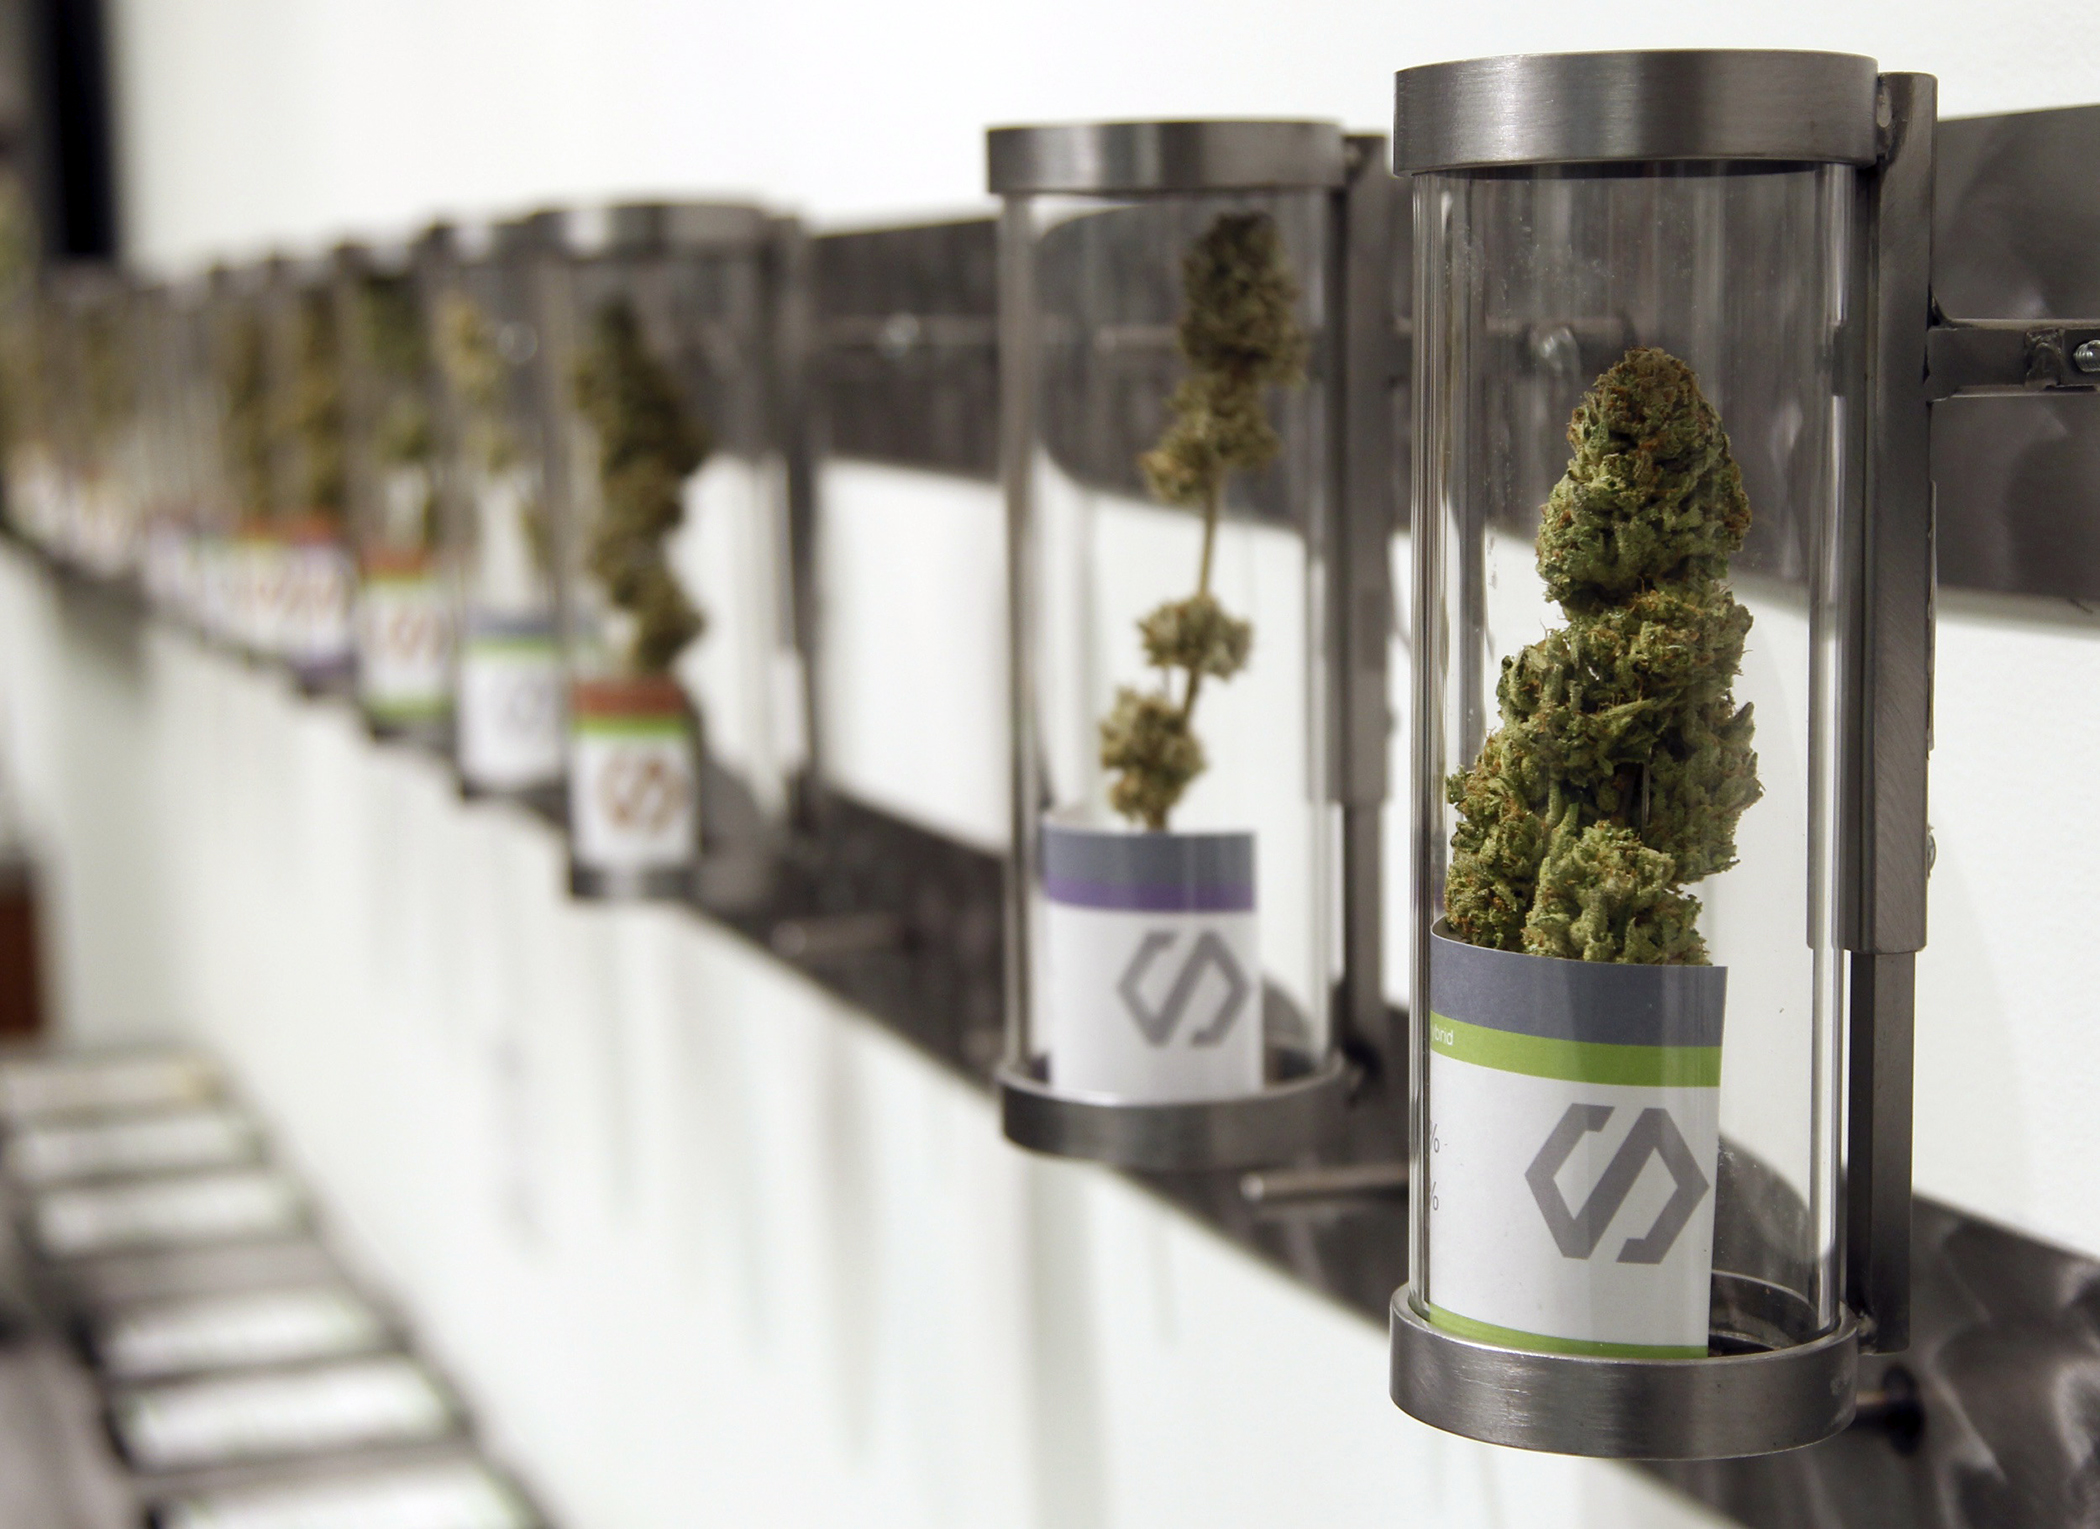 Displays at Shango Cannabis, a legal recreational marijuana dispensary in Portland, Oregon.